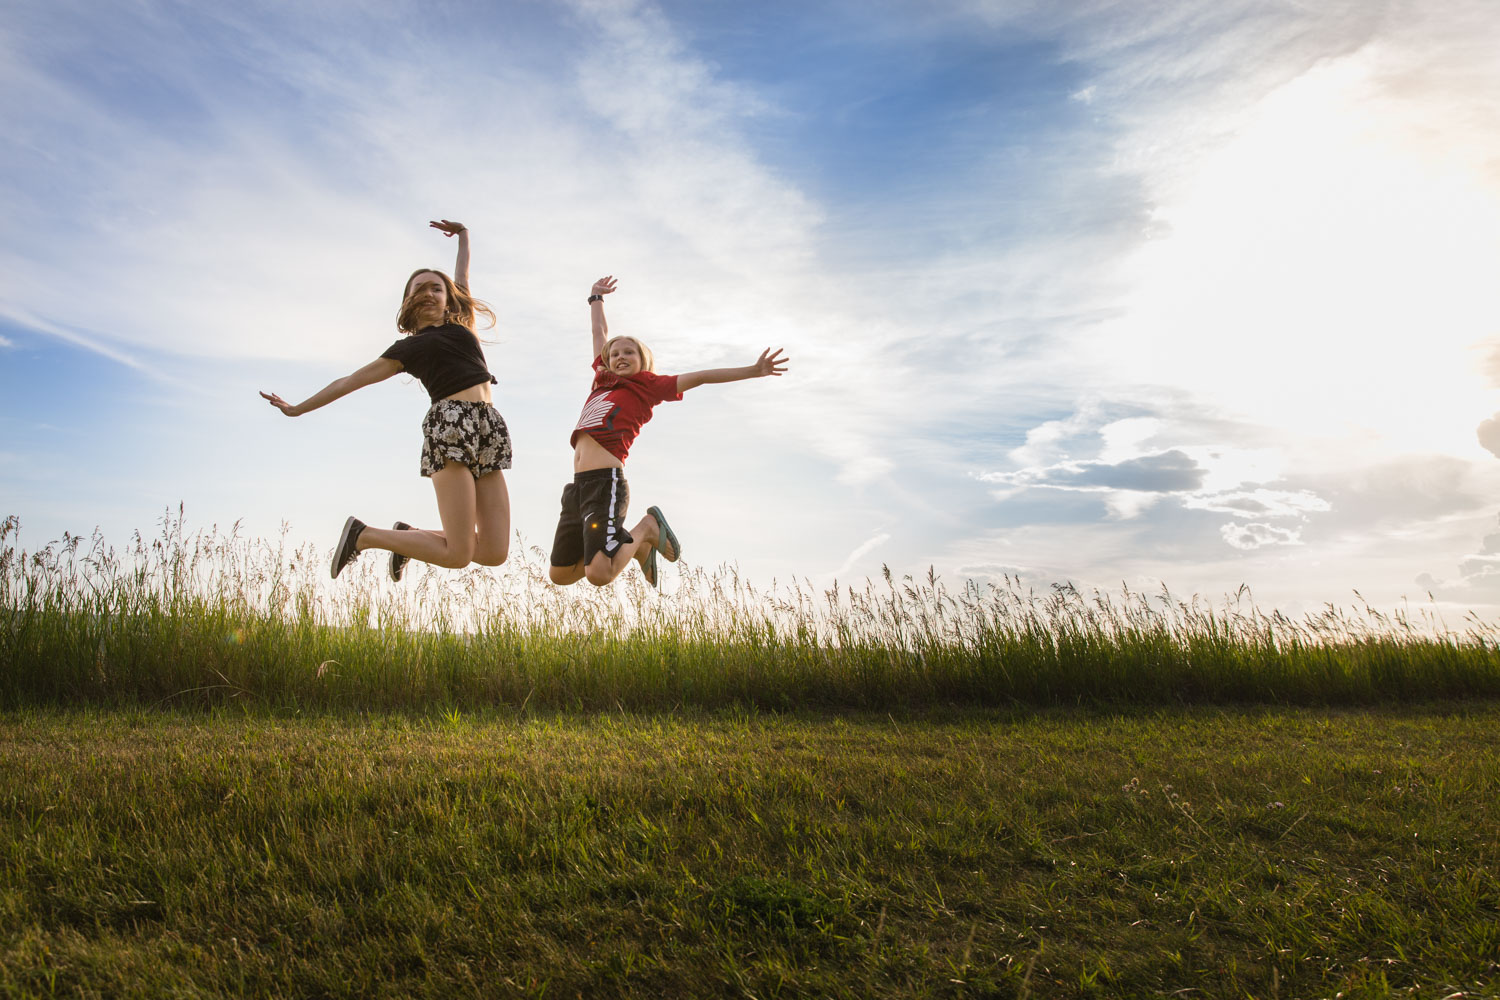 two kids jumping at sunset over a field of green and the clouds behind them.  Summer day